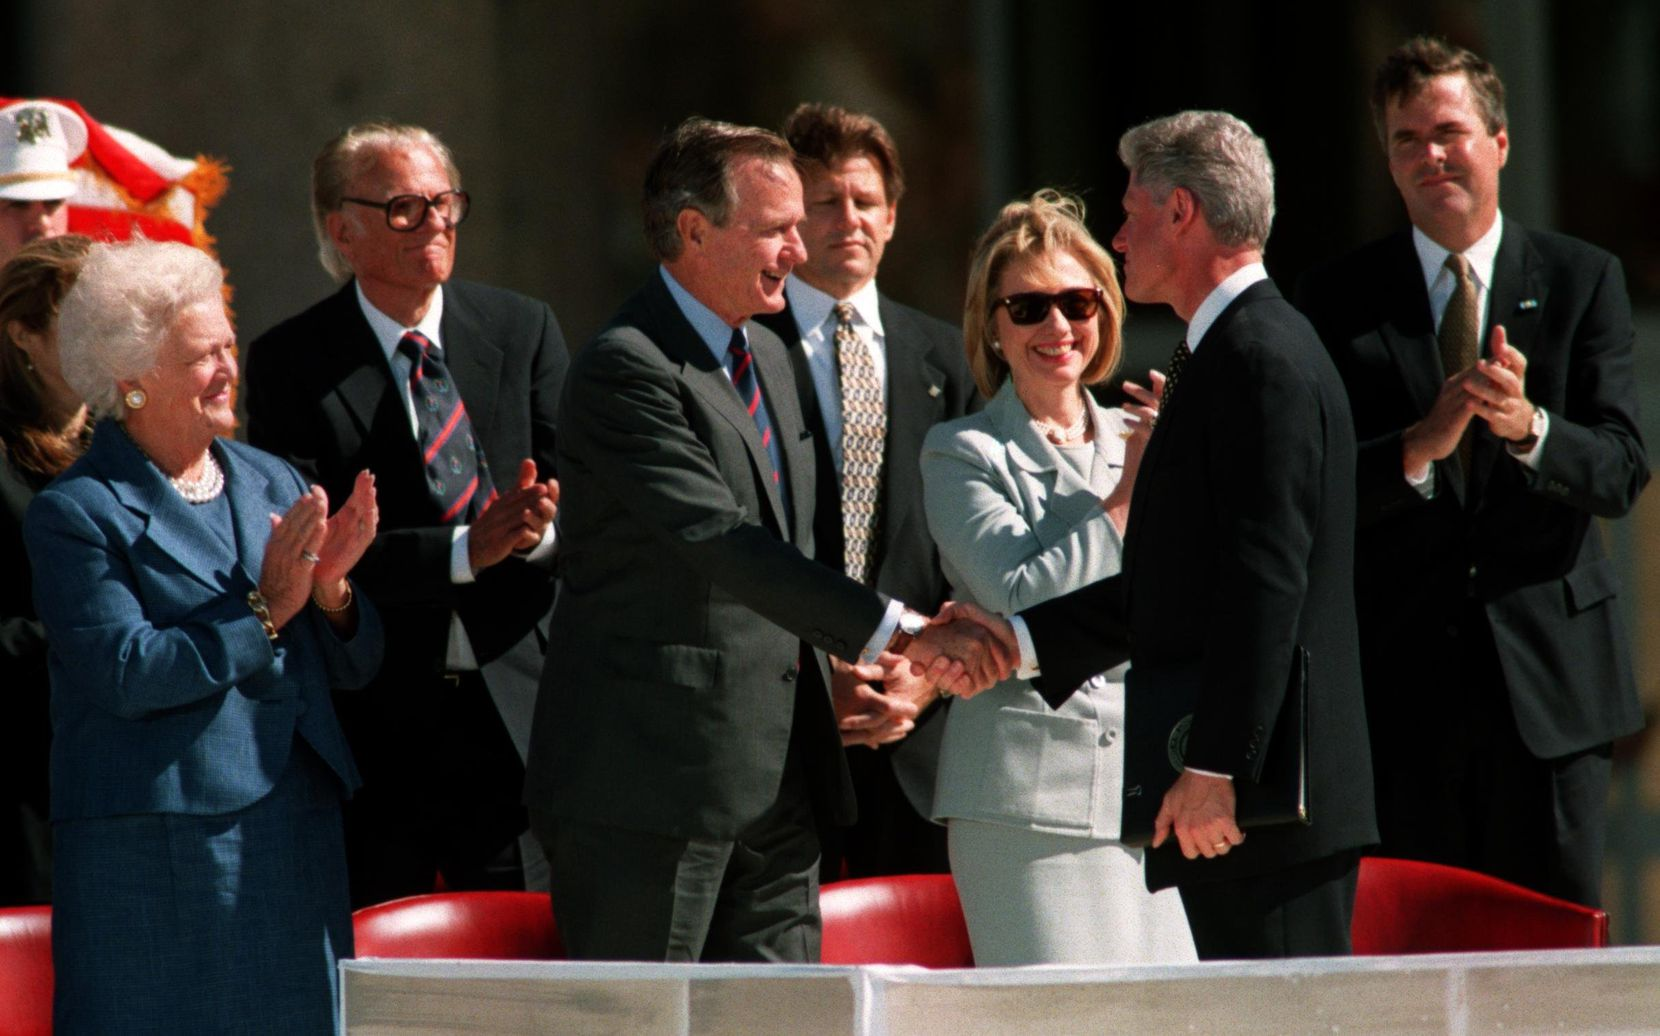 Former President George H.W. Bush and then-President  Bill Clinton shook hands at the  dedication ceremony for the George Bush Presidential Library and  Museum at Texas A&M University. Also attending, from left, were Barbara Bush, the Rev. Billy Graham, Hillary Clinton and Jeb Bush. (1997 File Photo/Staff)